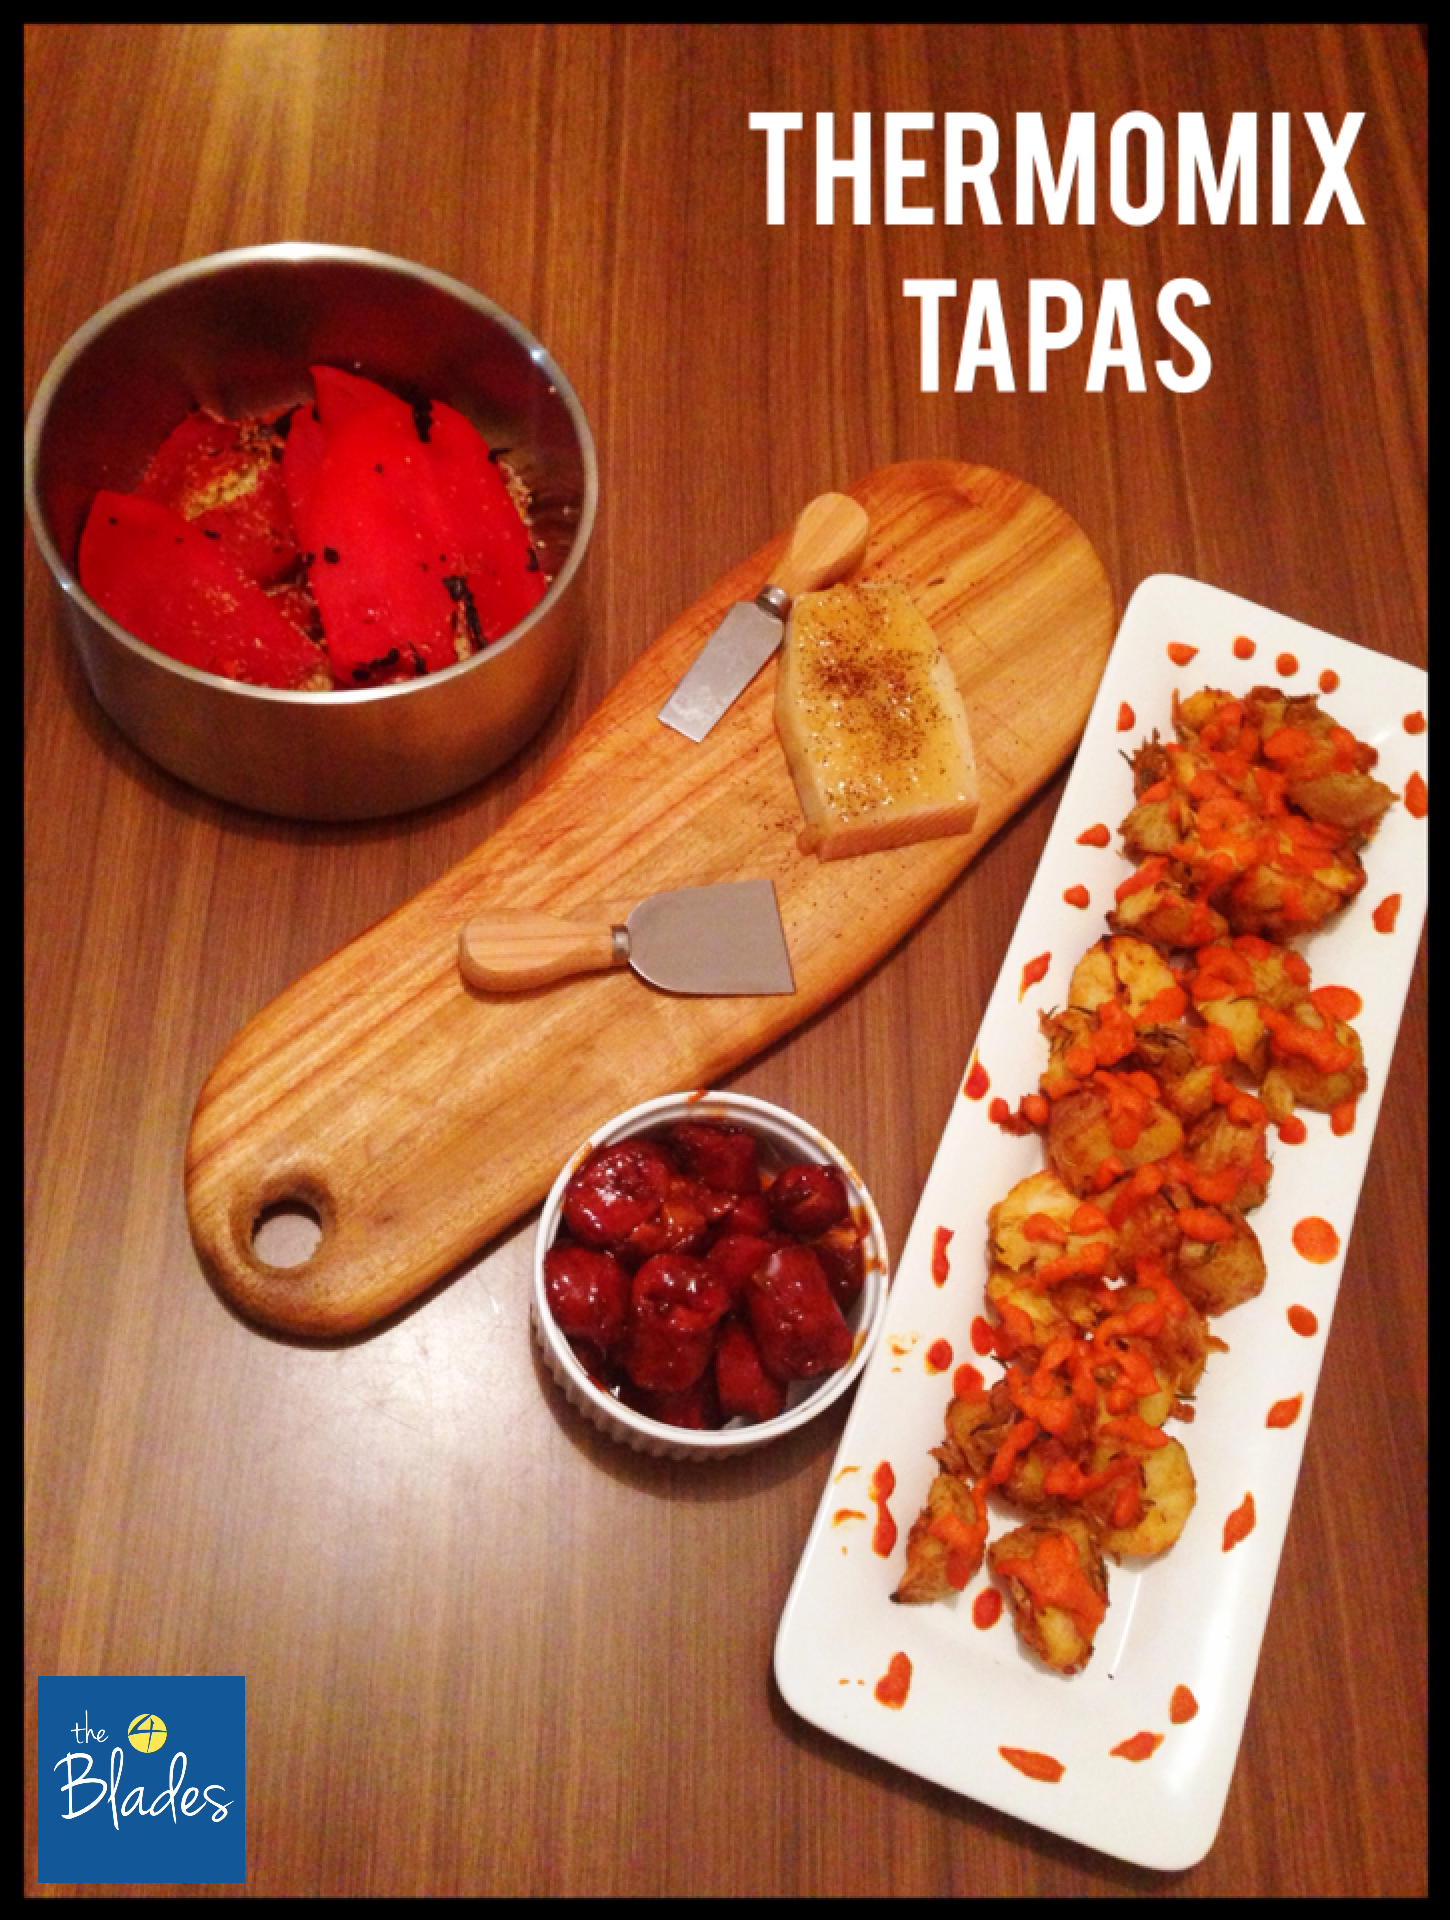 T4B049: Thermomix Tapas Feast | The 4 Blades